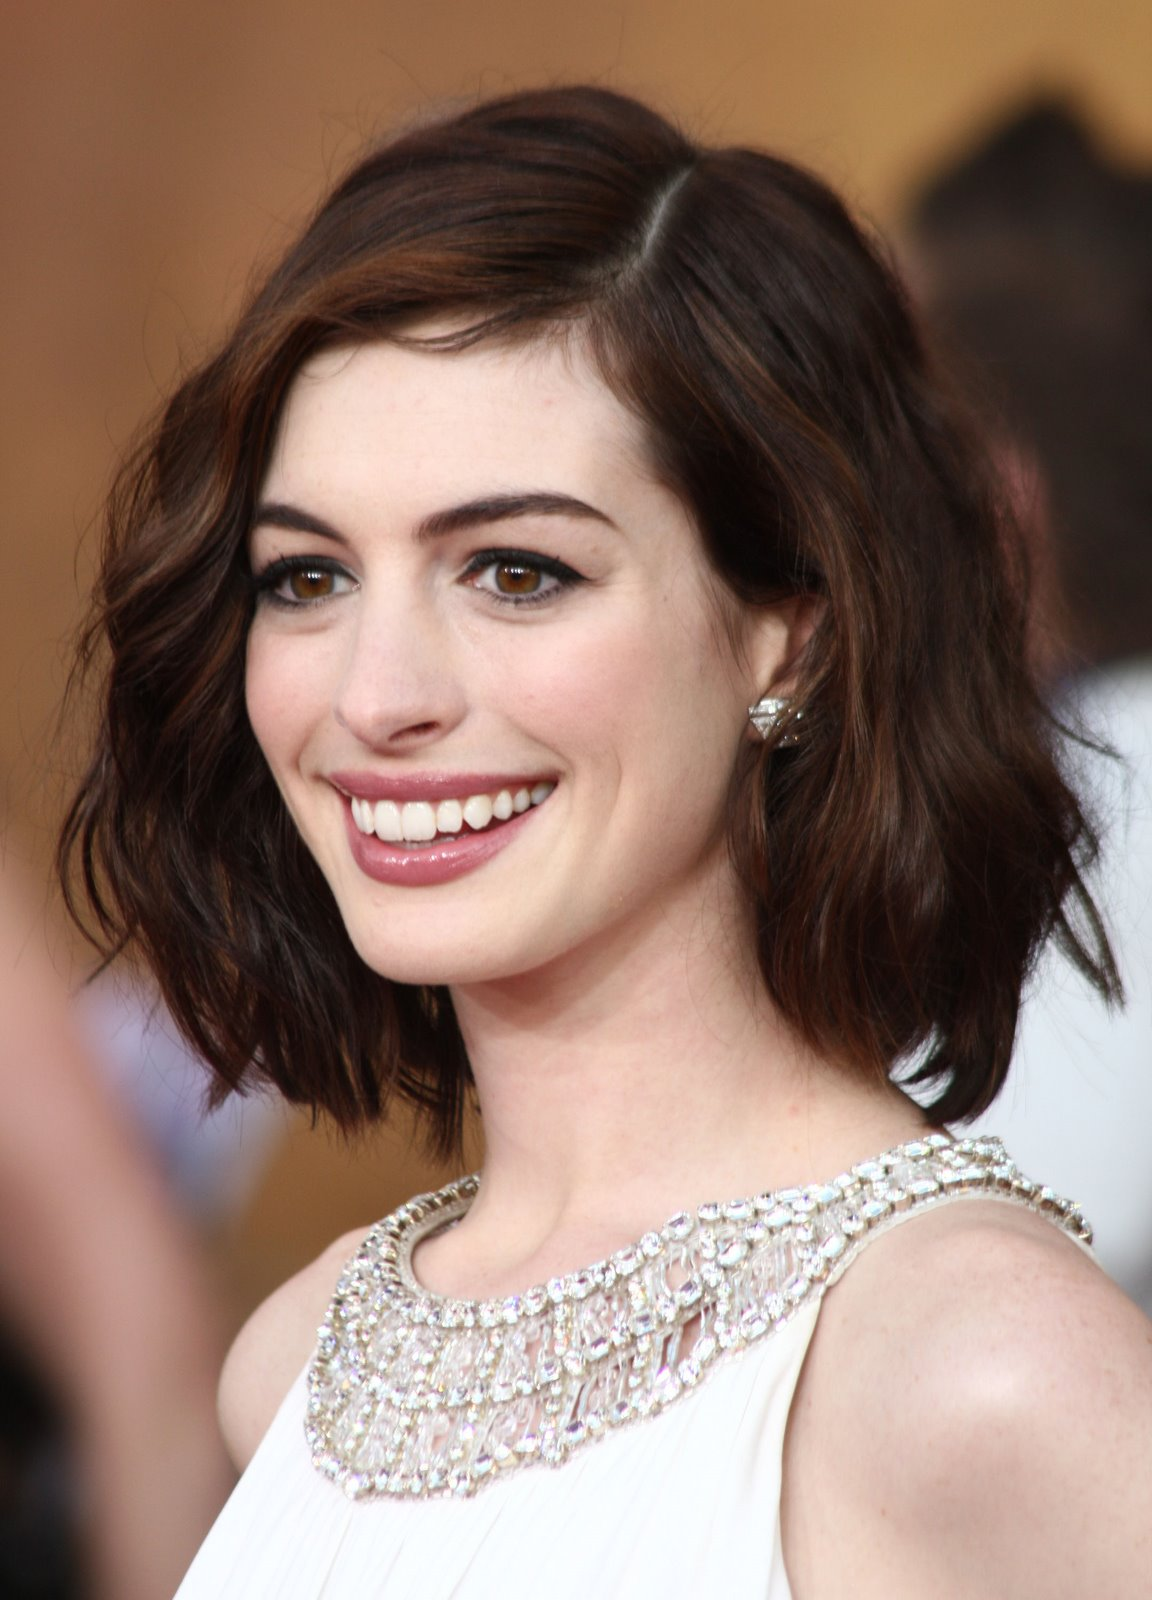 hairstyle dreams: perm short haircuts for women 2012